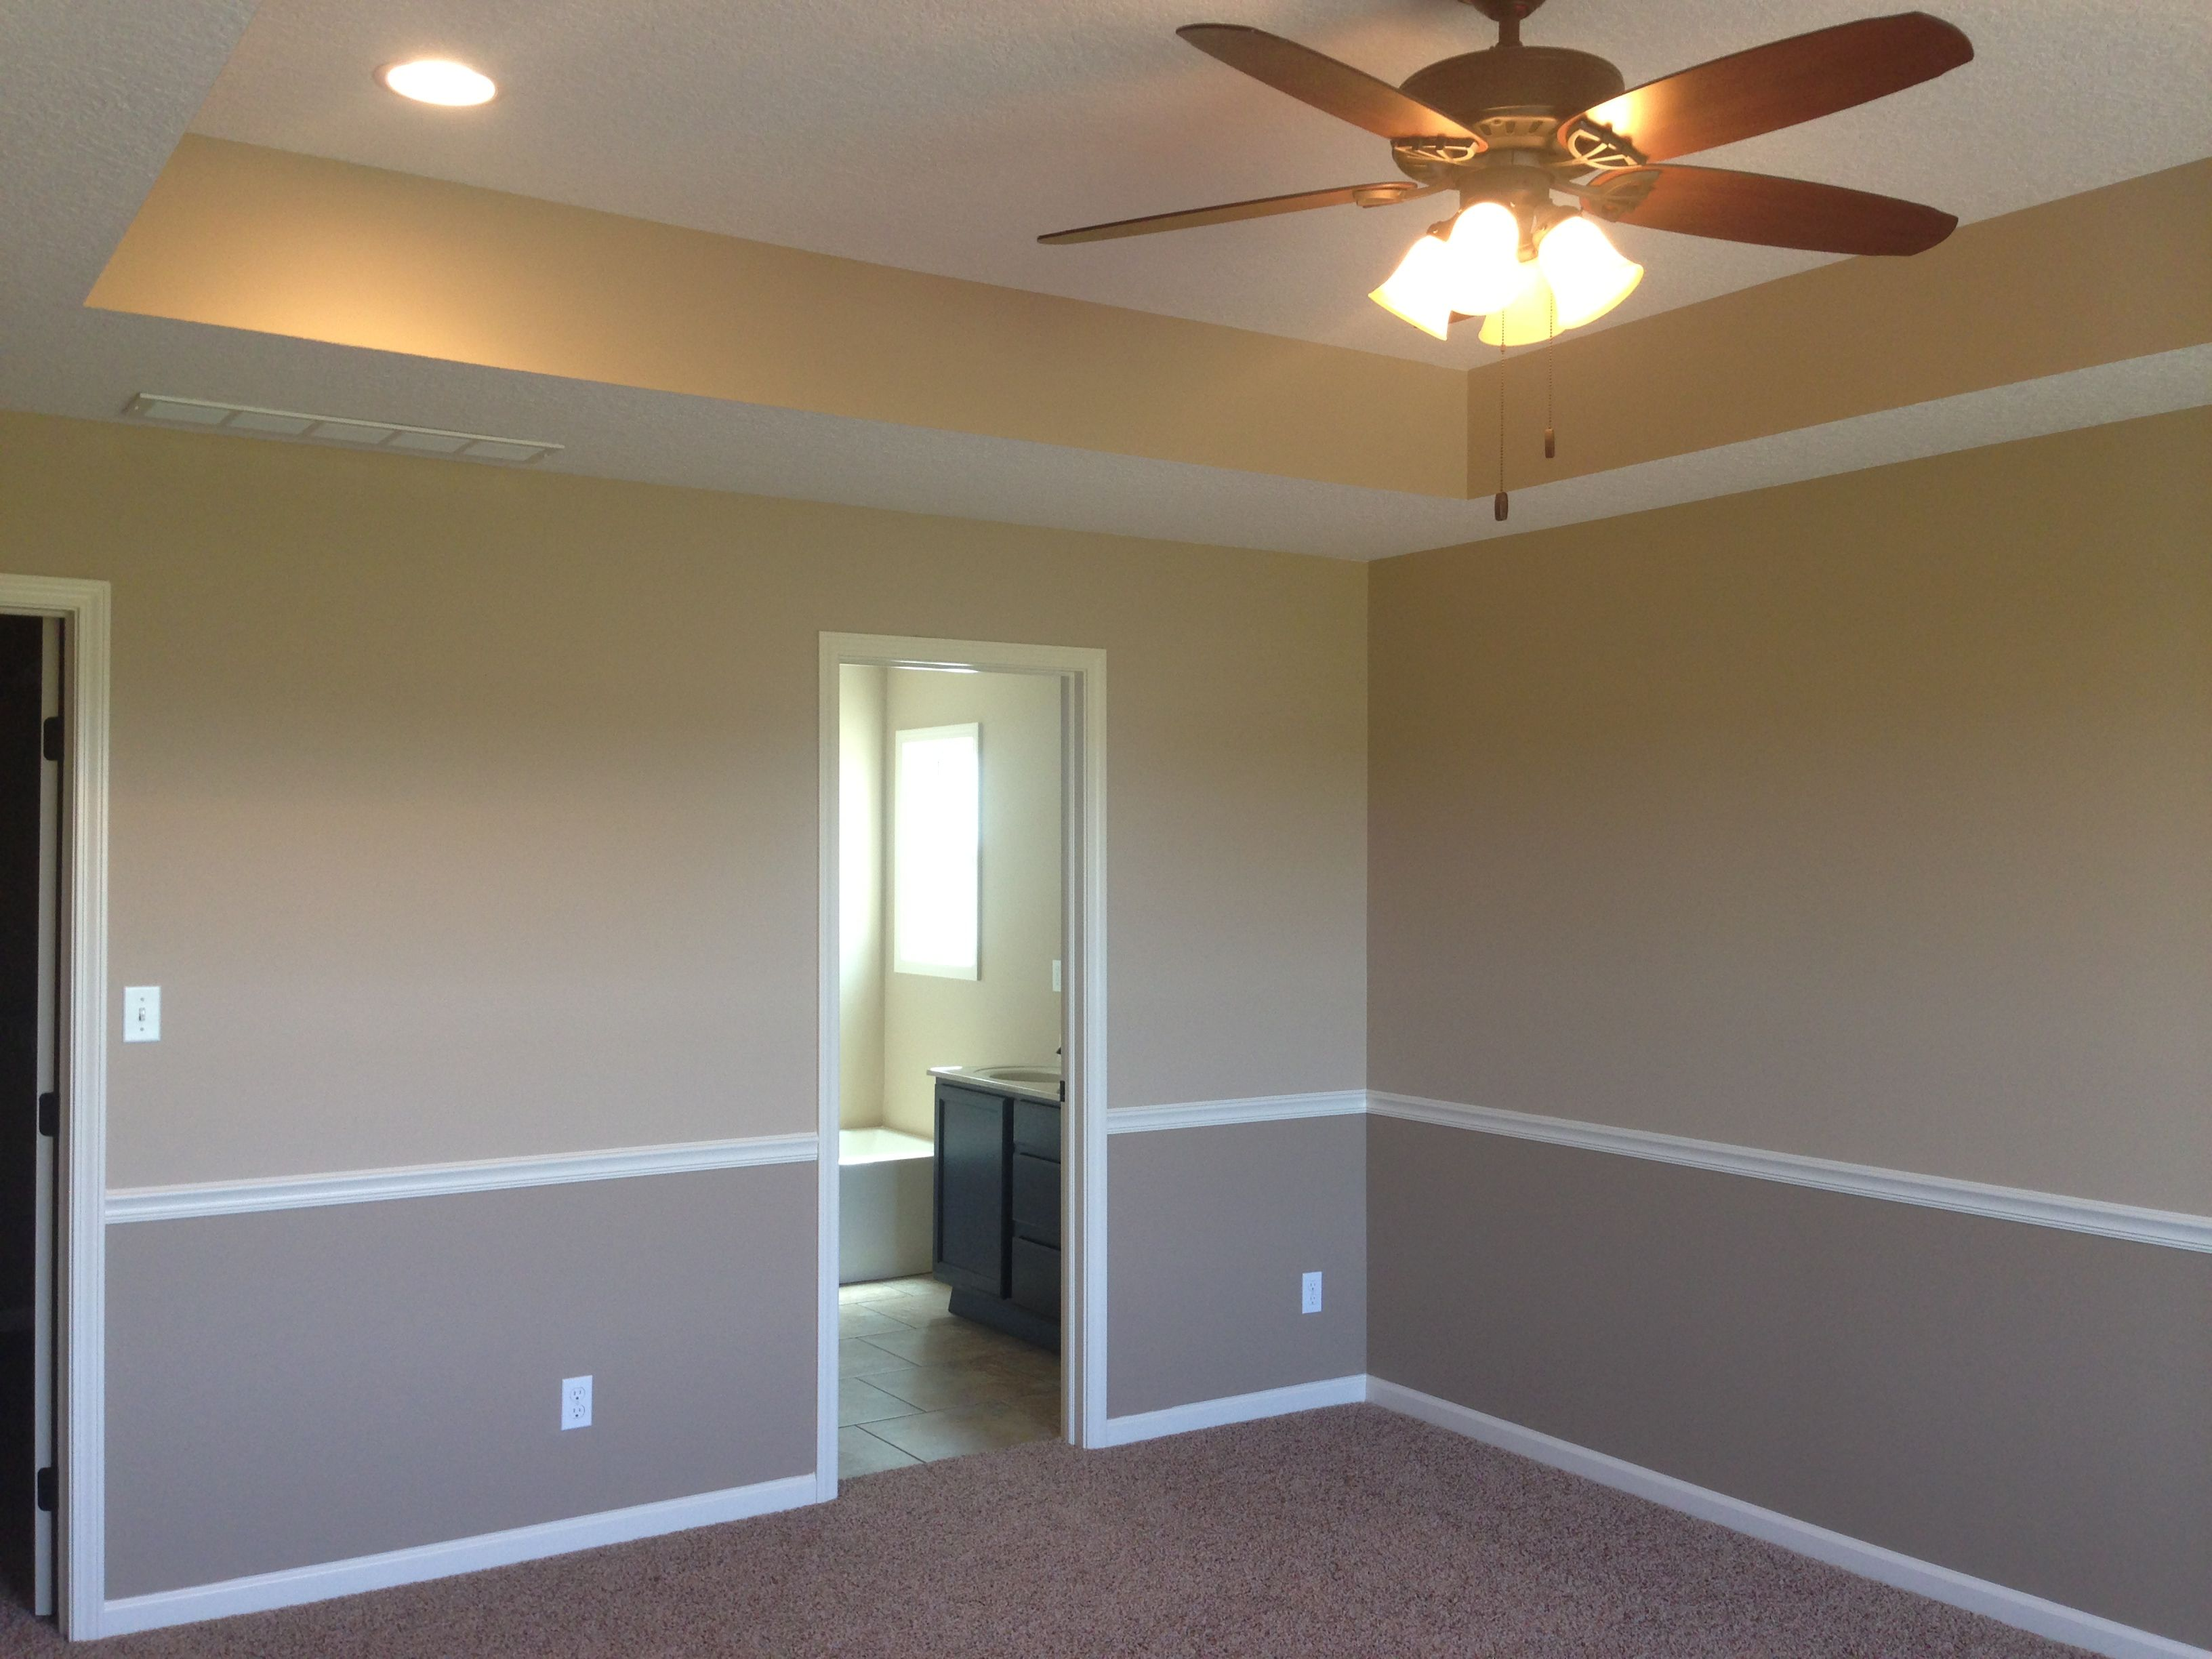 house painting ideas interior paint ideas pleasing painting designs house paint colors wall  colour TIHHWWO